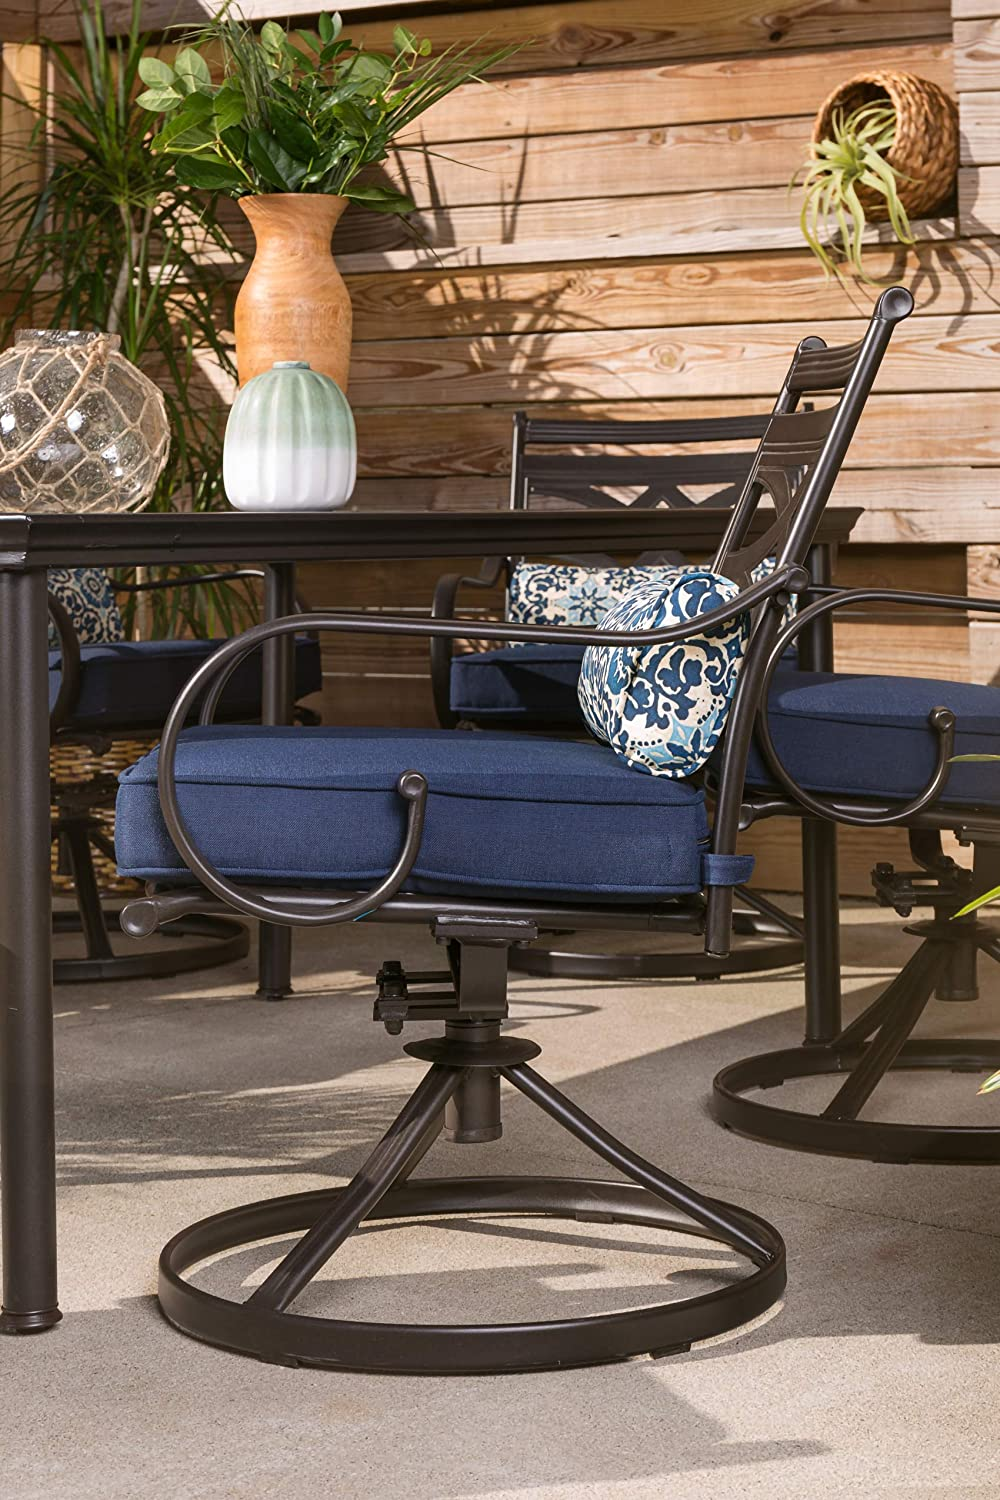 Hanover MCLRDN7PCSQSW6-NVY Montclair 7-Piece Set in Navy Blue with 6 Swivel Rockers and a 40 x 67 Dining Table Outdoor Furniture